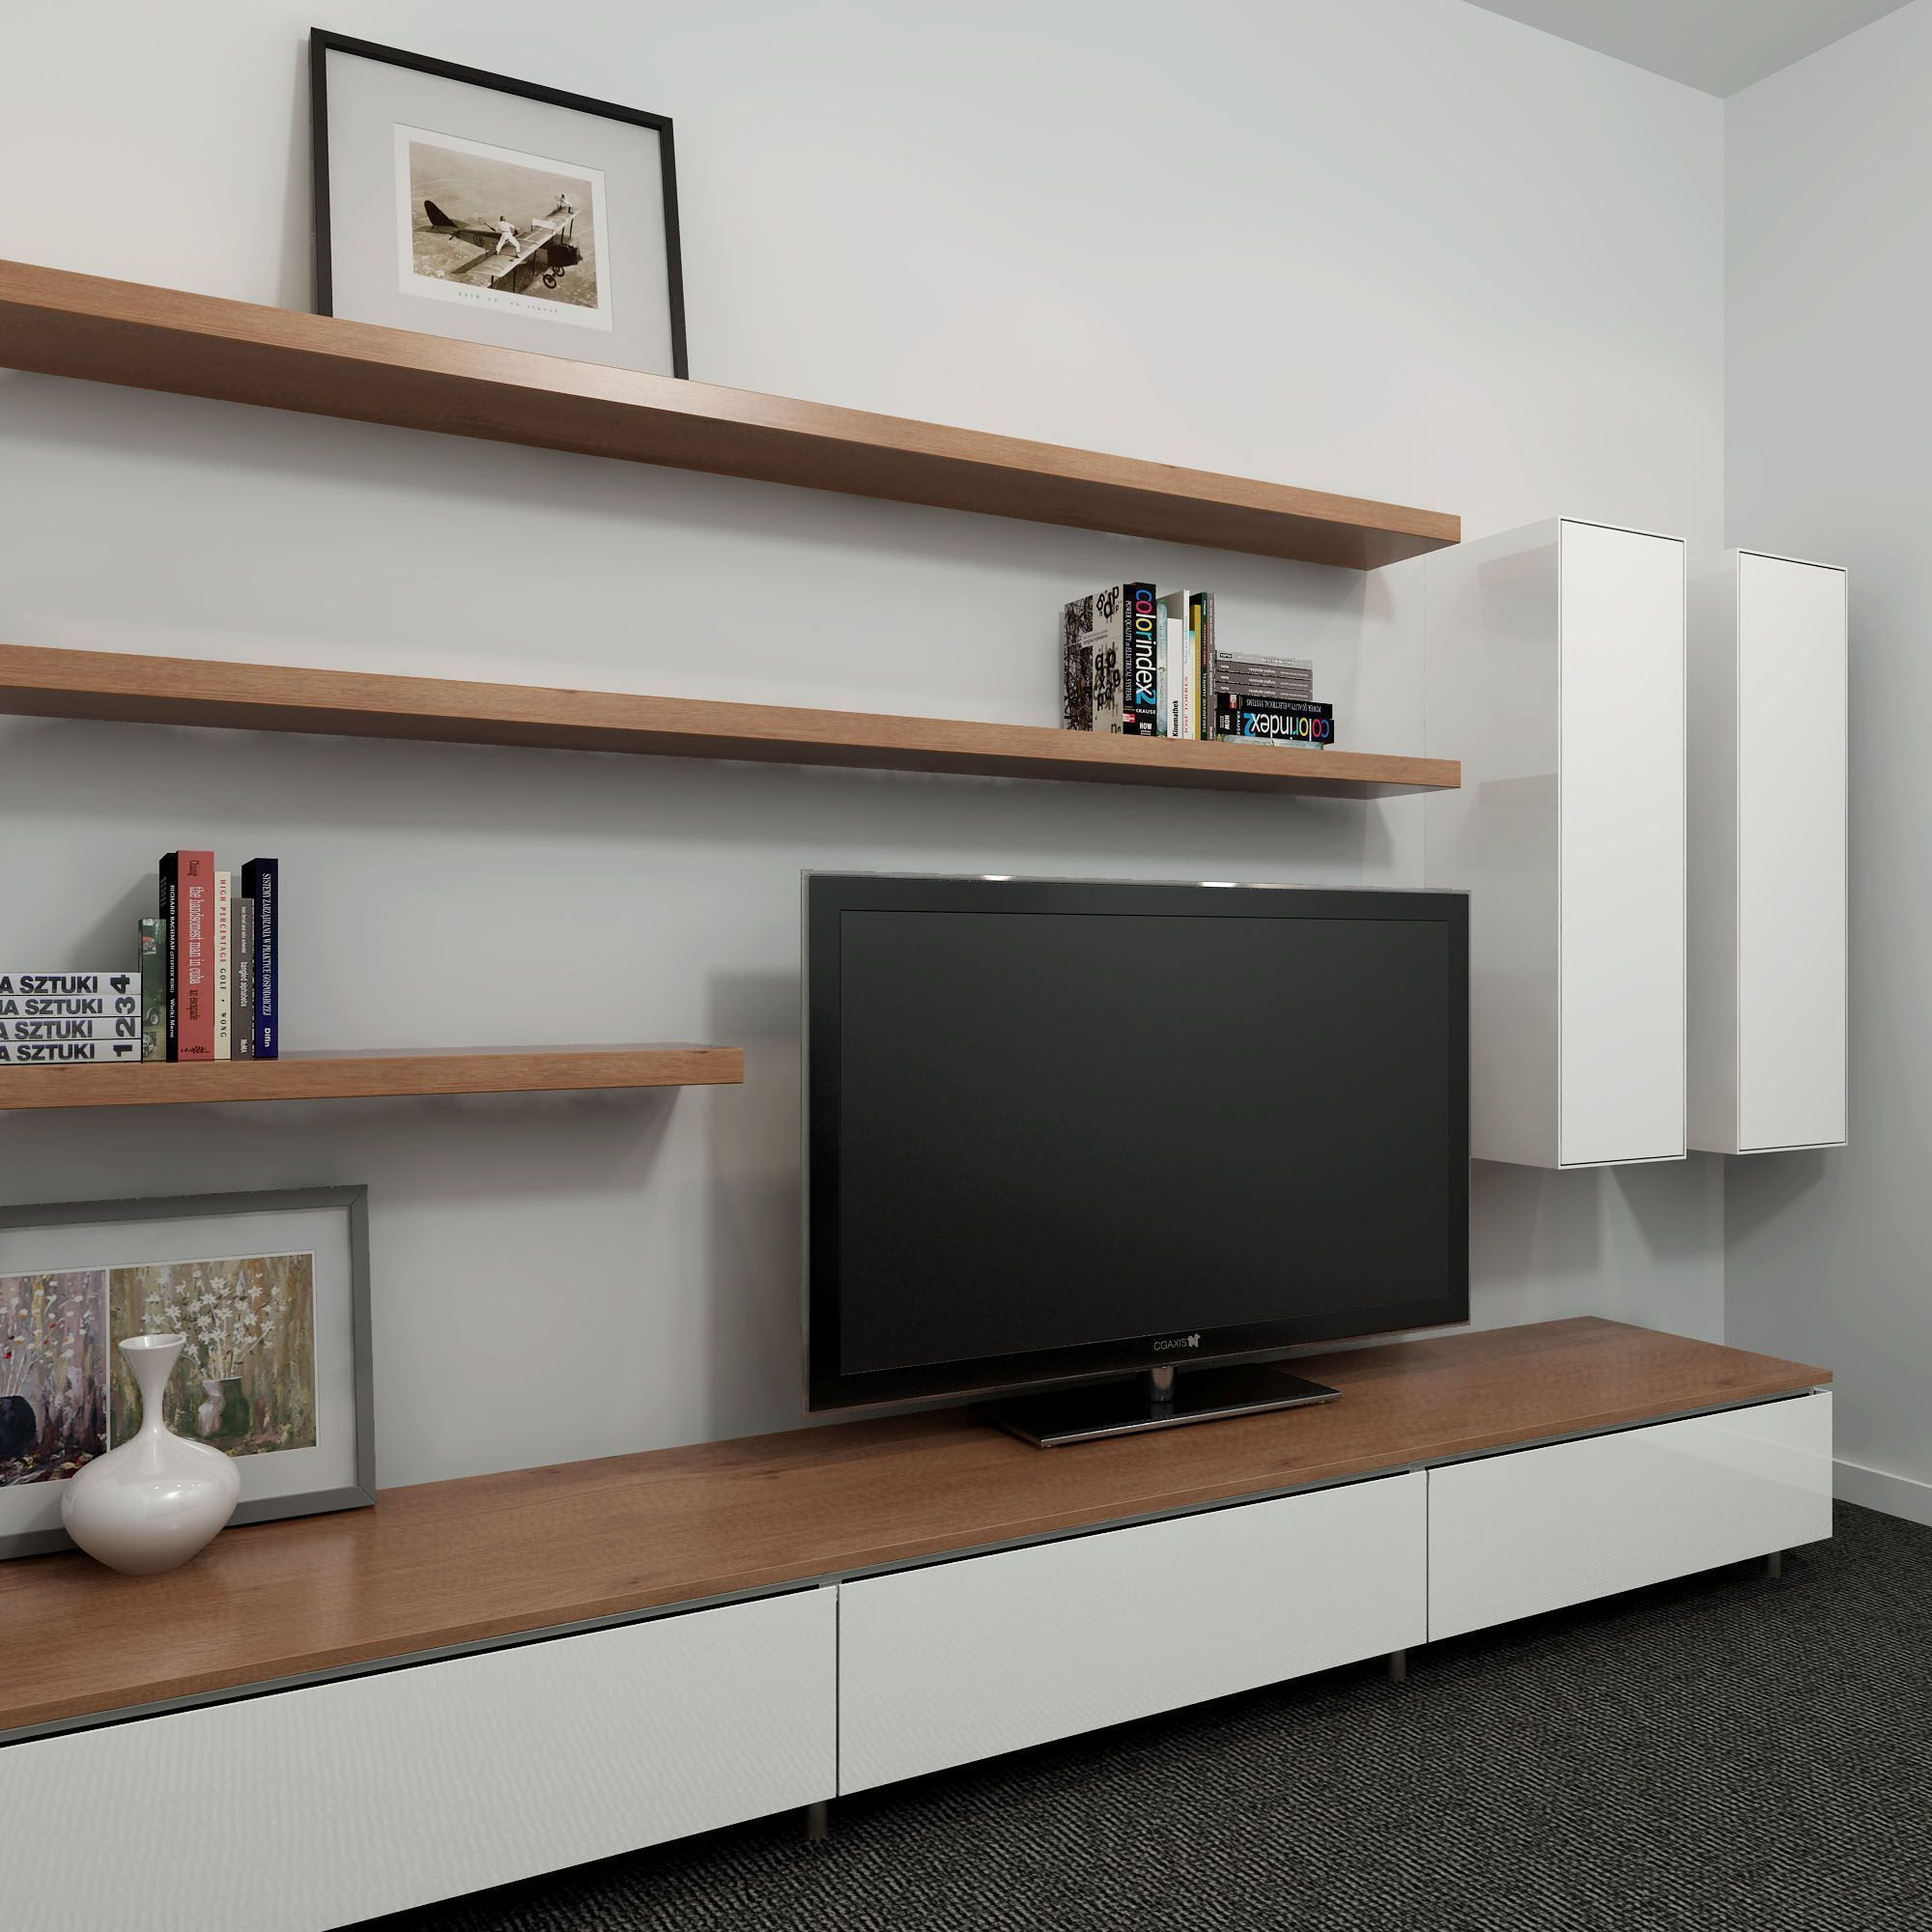 50 Cool Tv Stand Designs For Your Home Tv Stand Ideas Diy Tv Stand Ideas Fo Floating Tv Stand Ikea Living Room Tv Stand Floating Shelves Entertainment Center